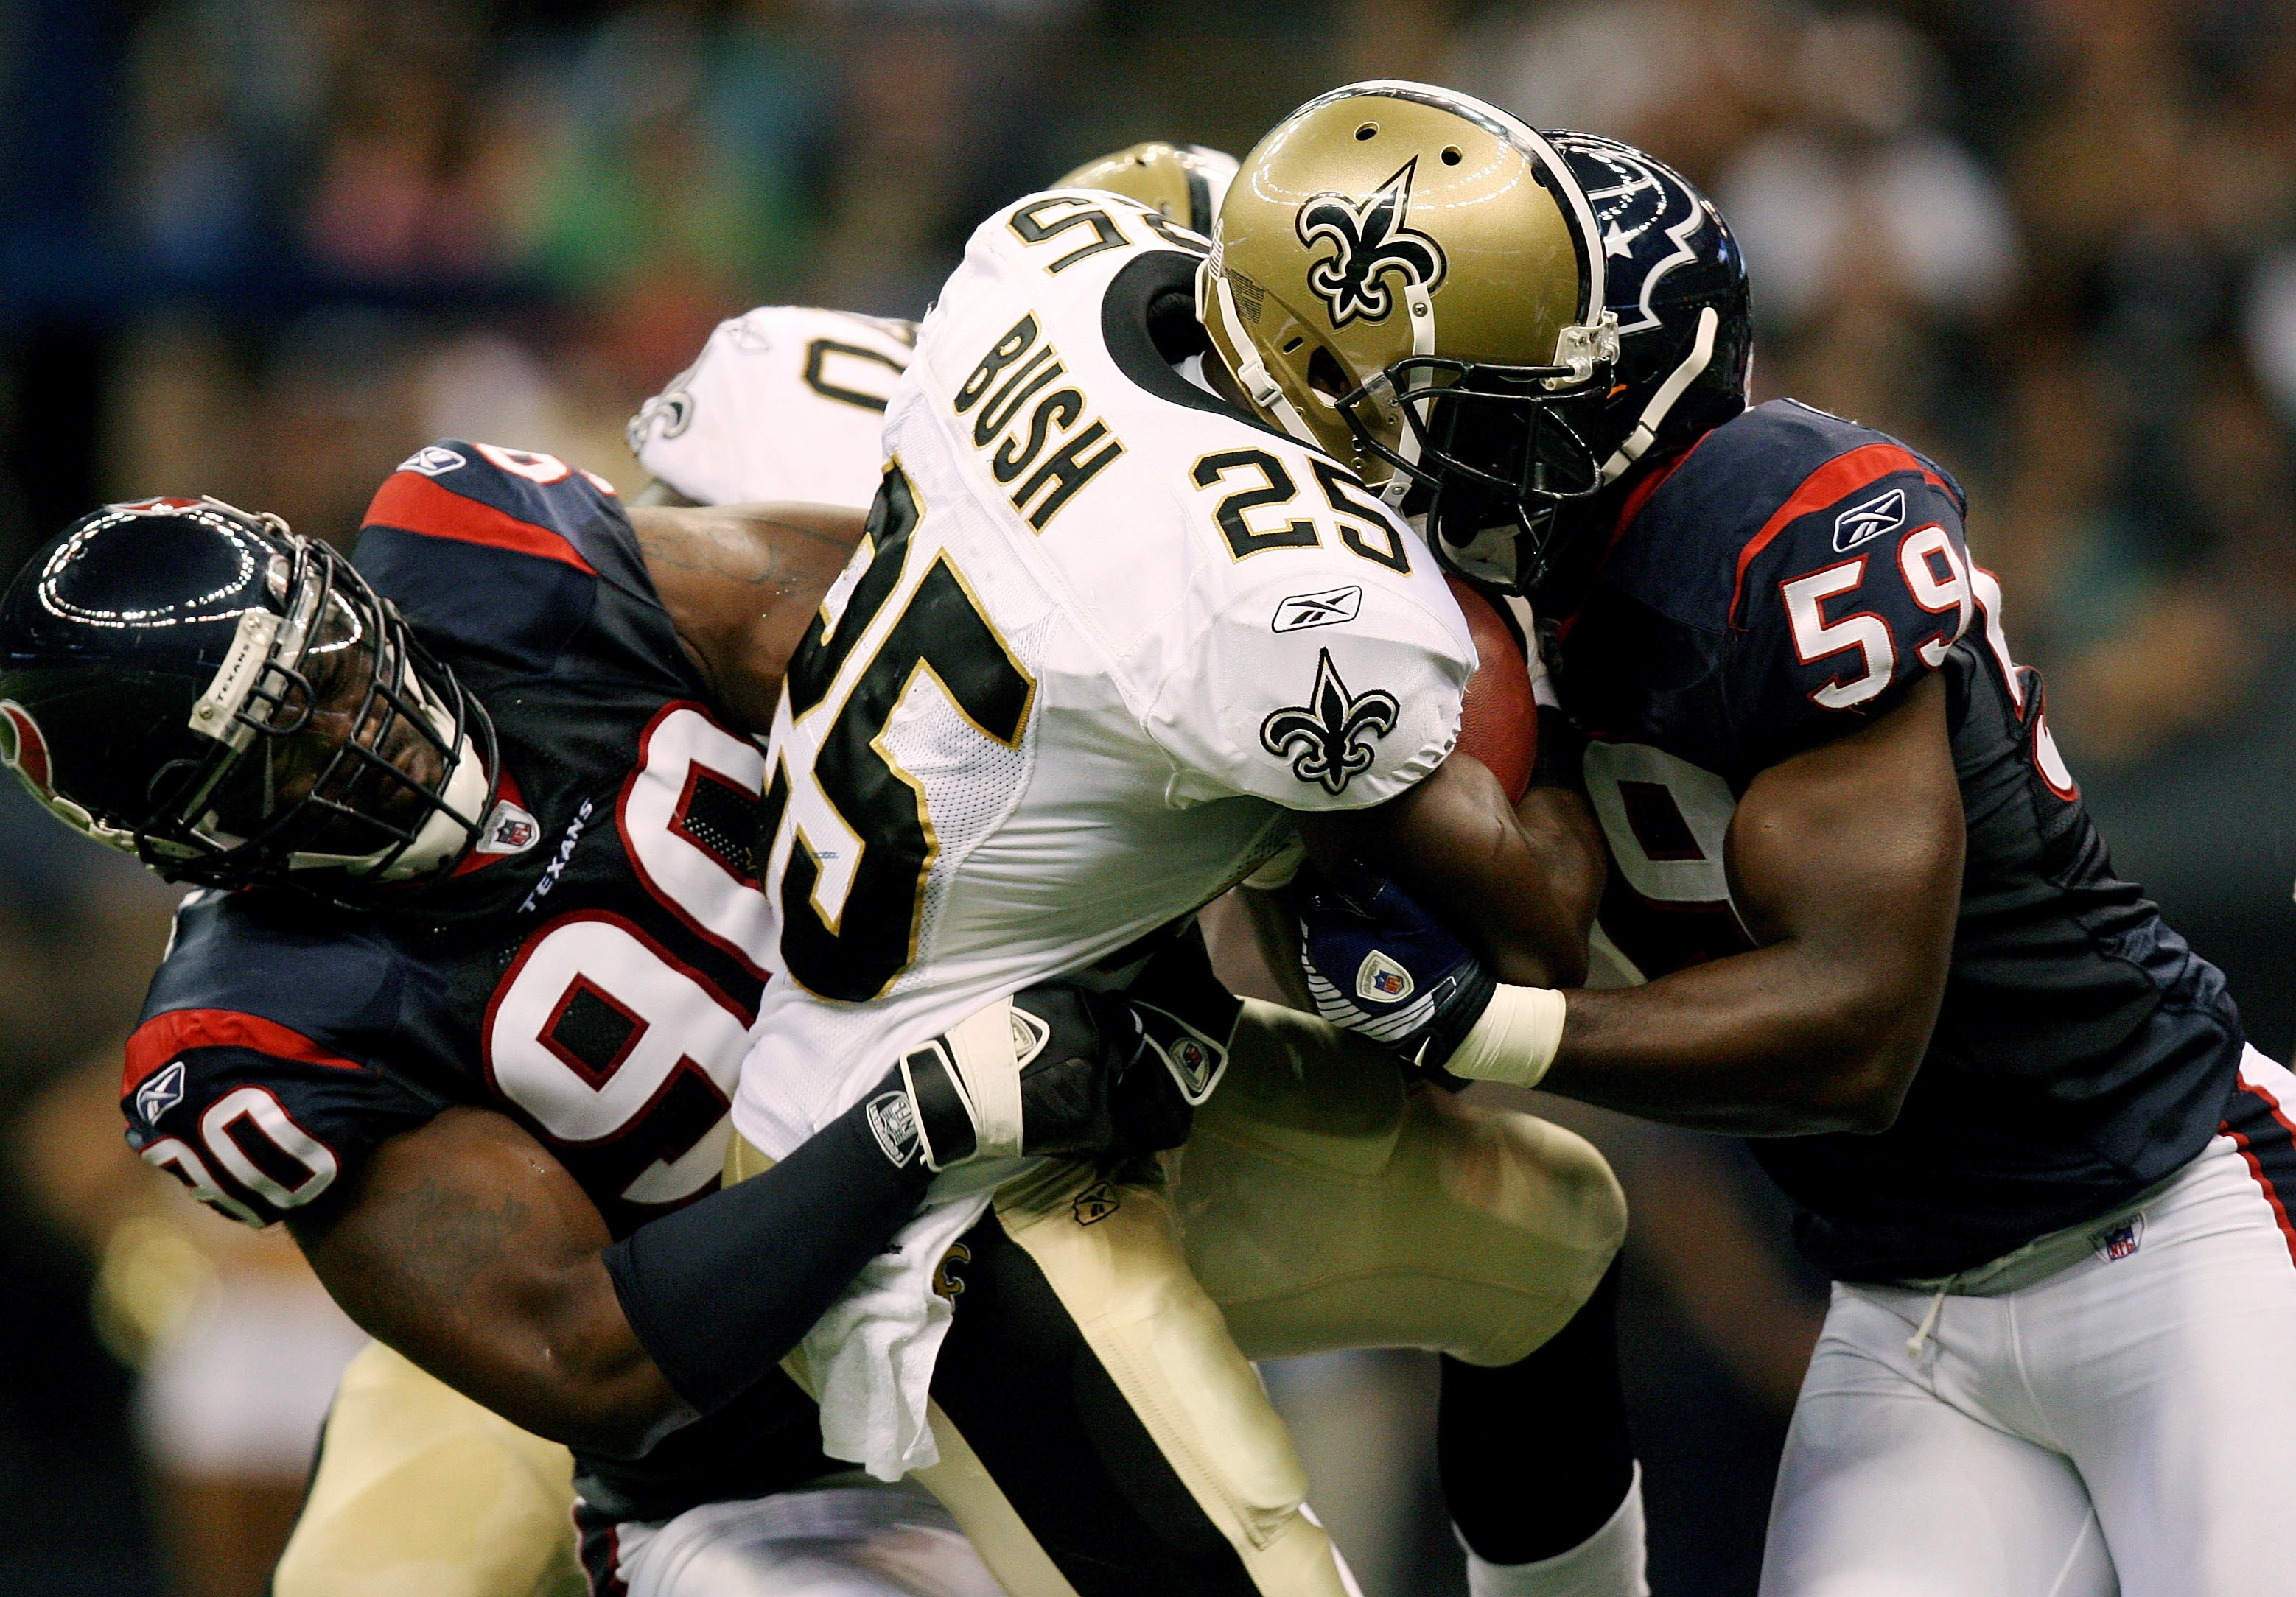 NEW ORLEANS - AUGUST 16:  Defensive end Mario Williams #90 and linebacker DeMeco Ryans #59 of the Houston Texans brings down running back Reggie Bush #25 of the New Orleans Saints during a pre-season game at Louisiana Superdome on August 16, 2008 in New O